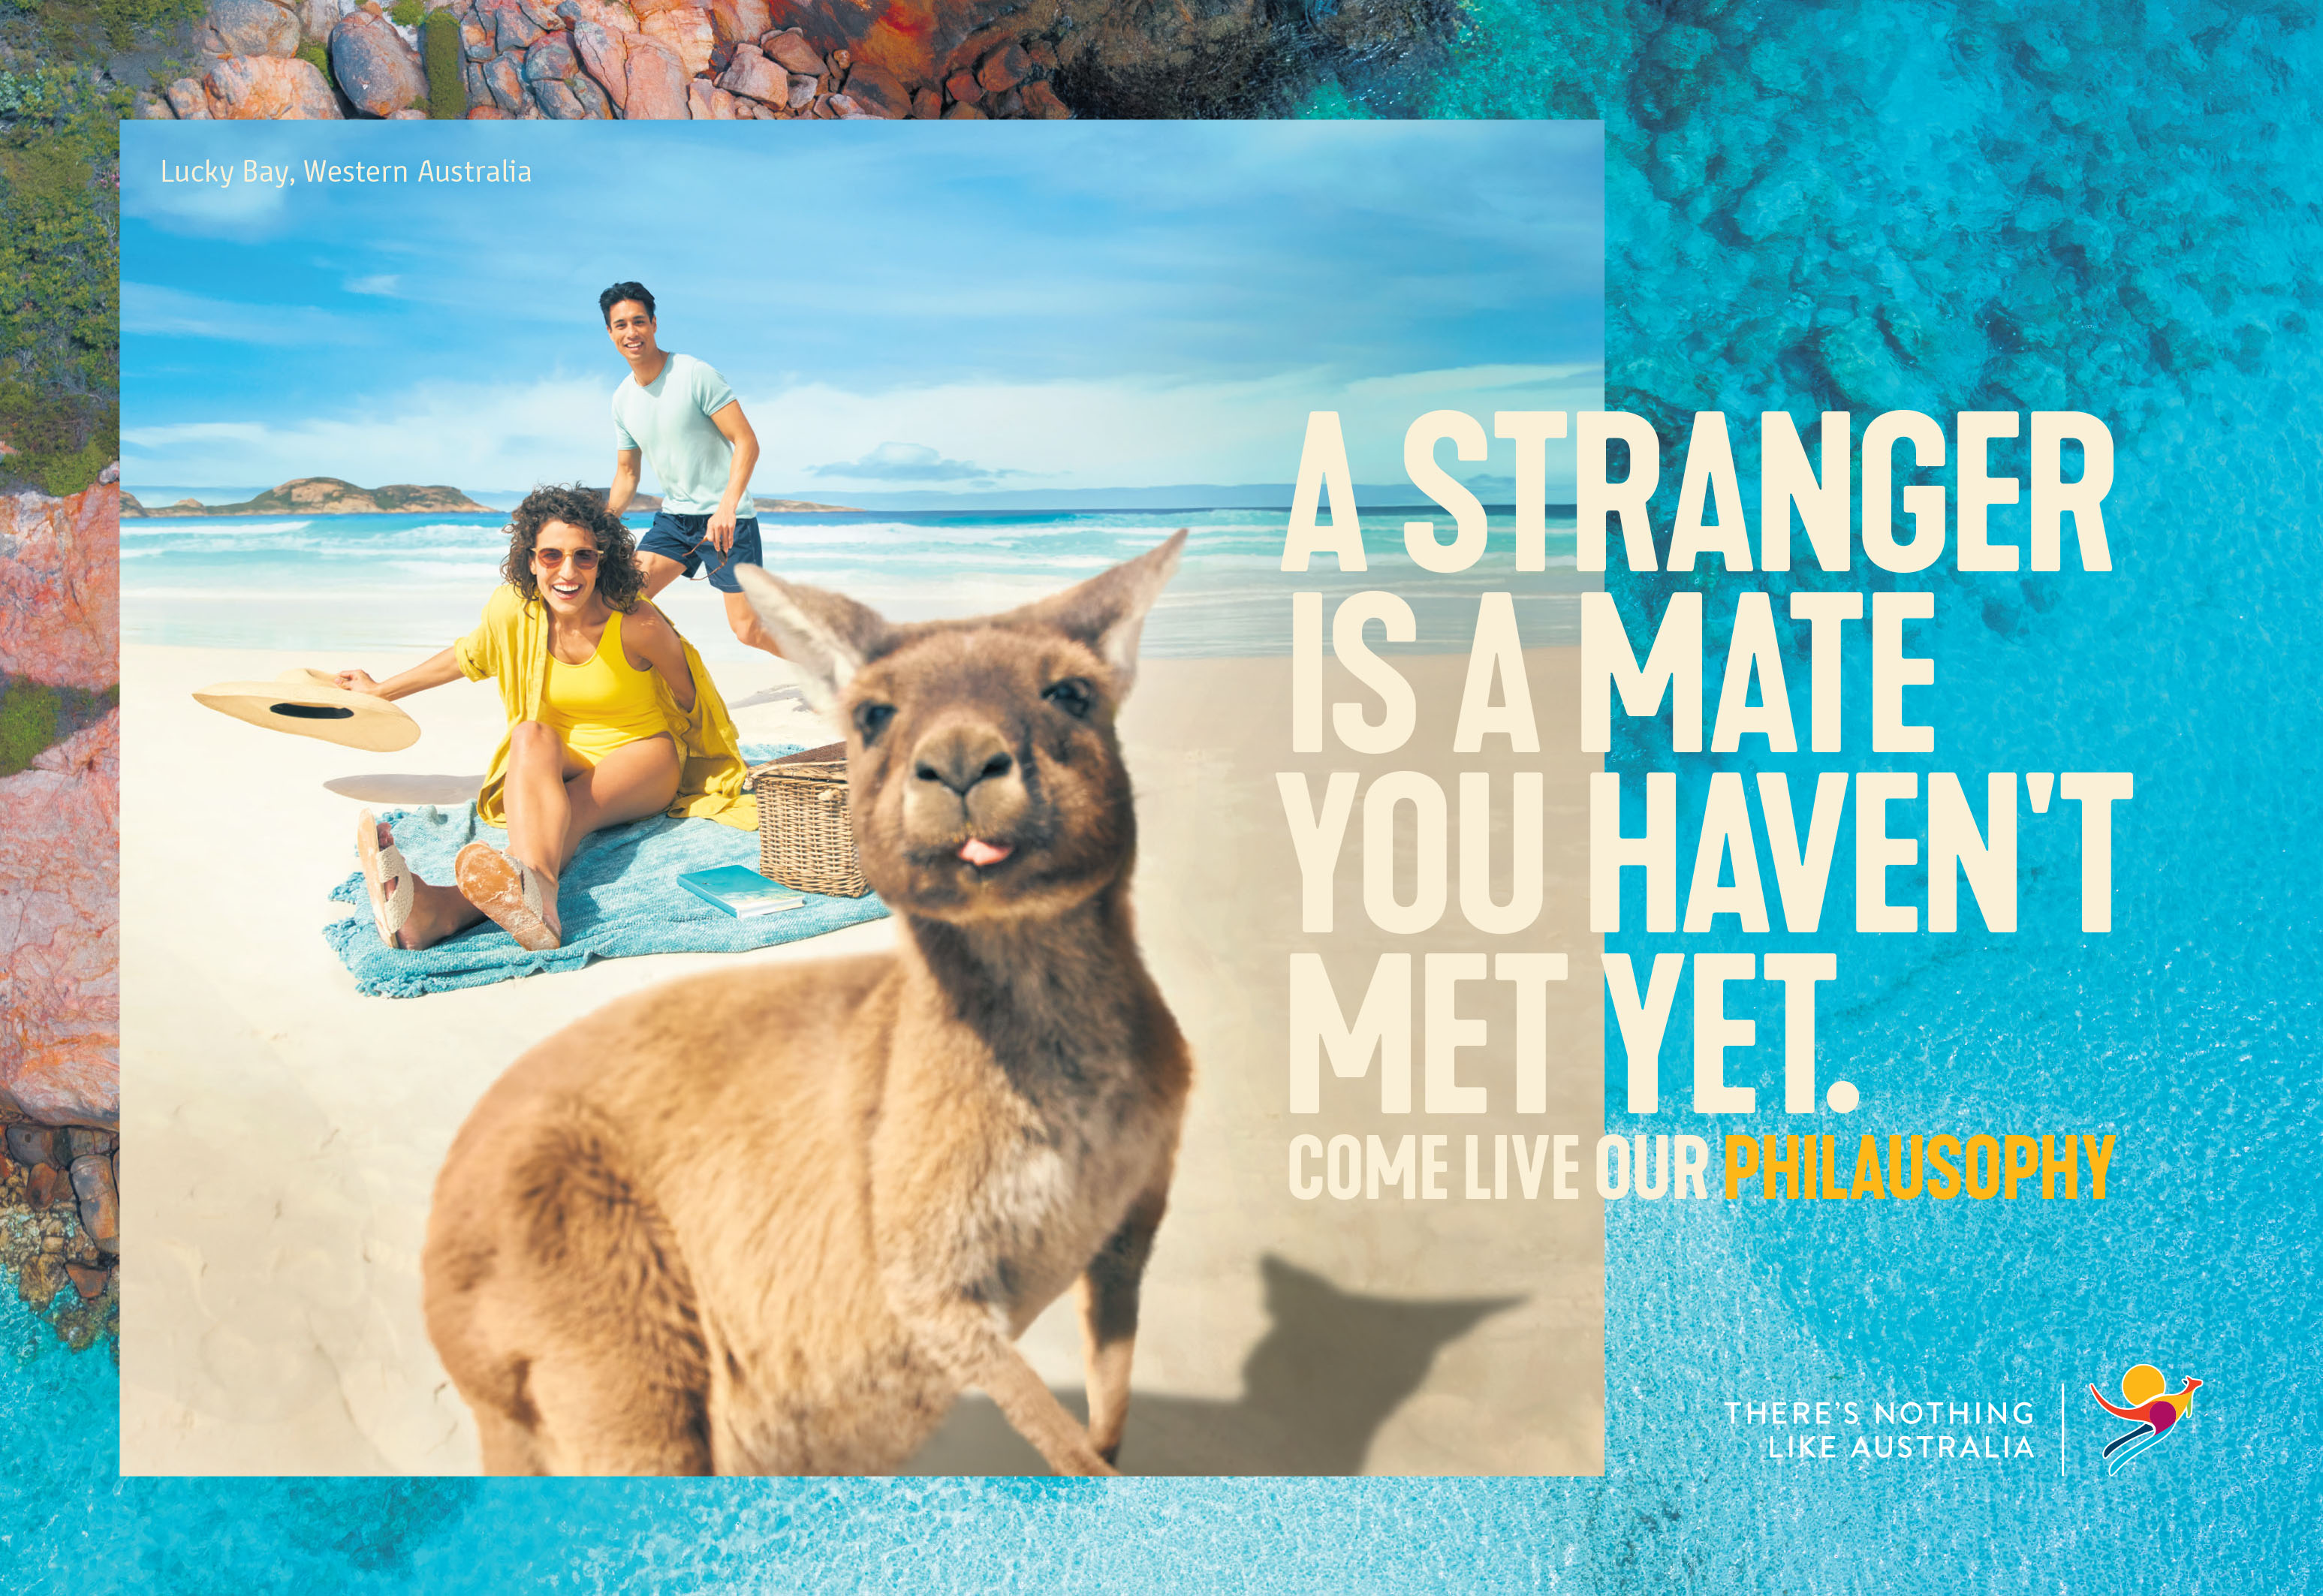 Tourism Australia invites the world to come and live Australia's Philausophy in major global campaign via M&C Saatchi Sydney, Digitas and UM